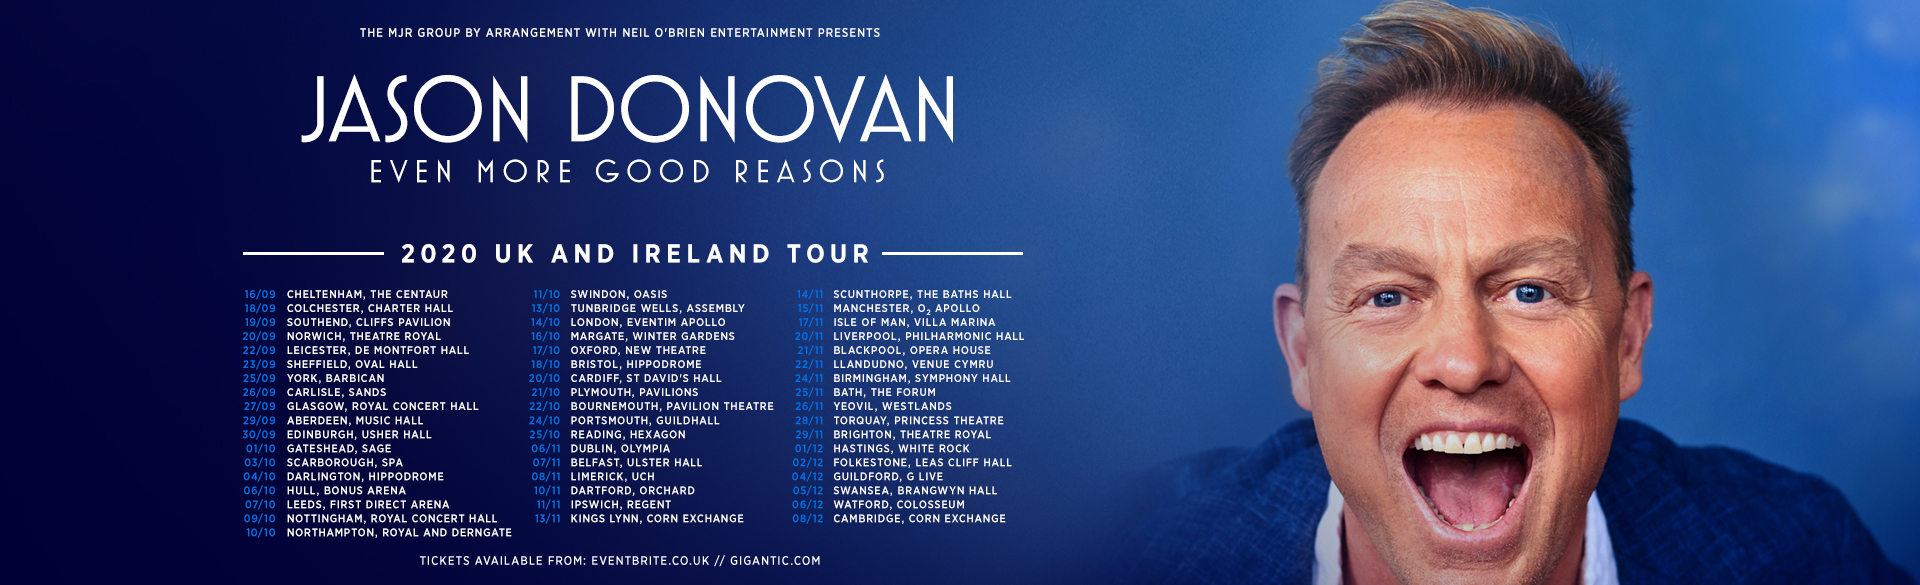 Just Announced: Jason Donovan 'Even More Good Reasons' UK & Ireland Tour!